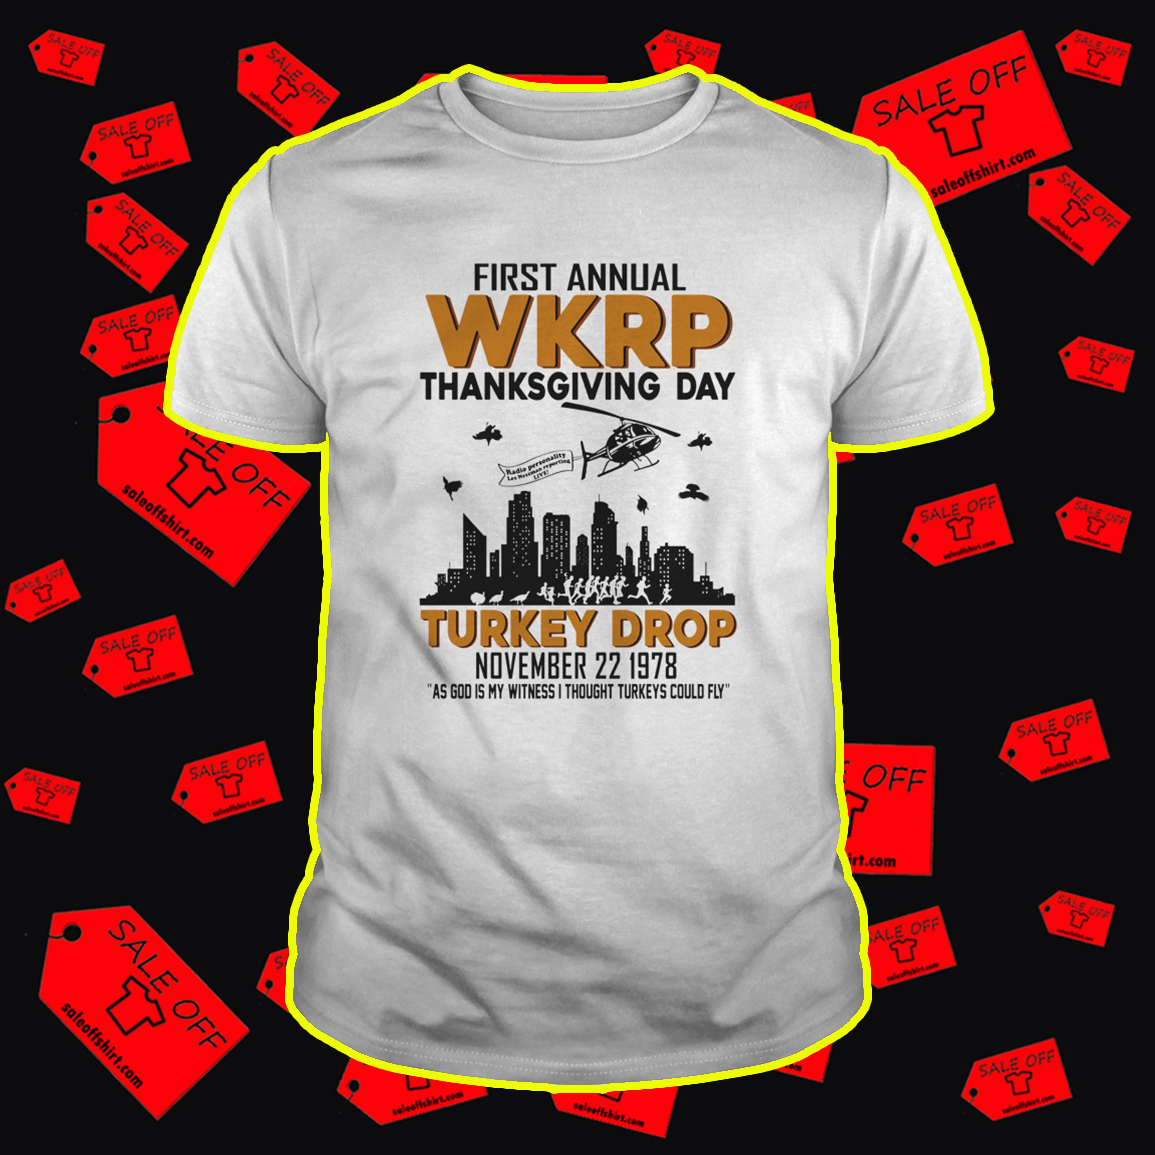 First annual WKRP thanksgiving day shirt